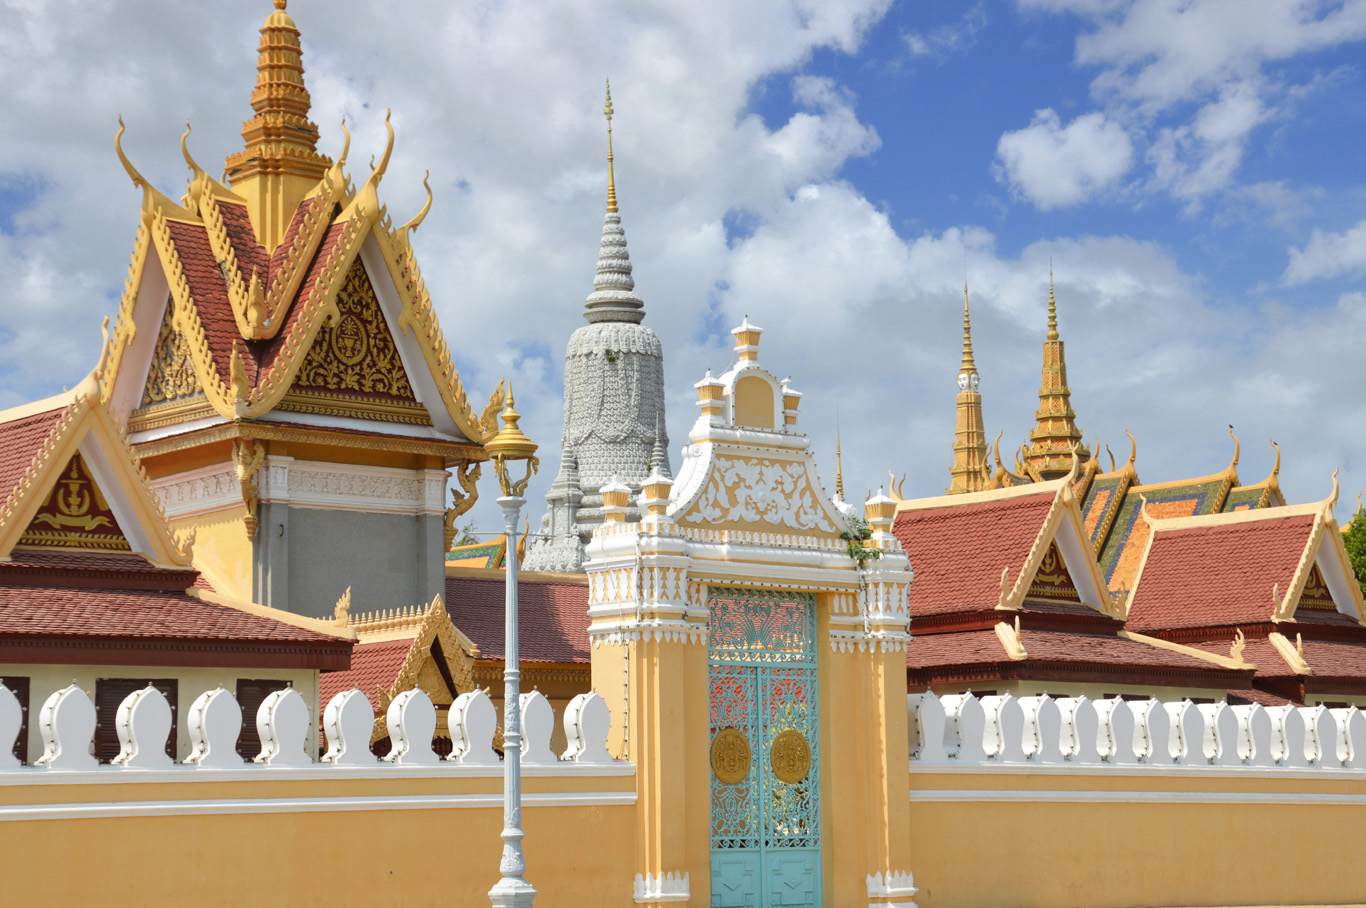 The Gate to the Palace and royal stupas